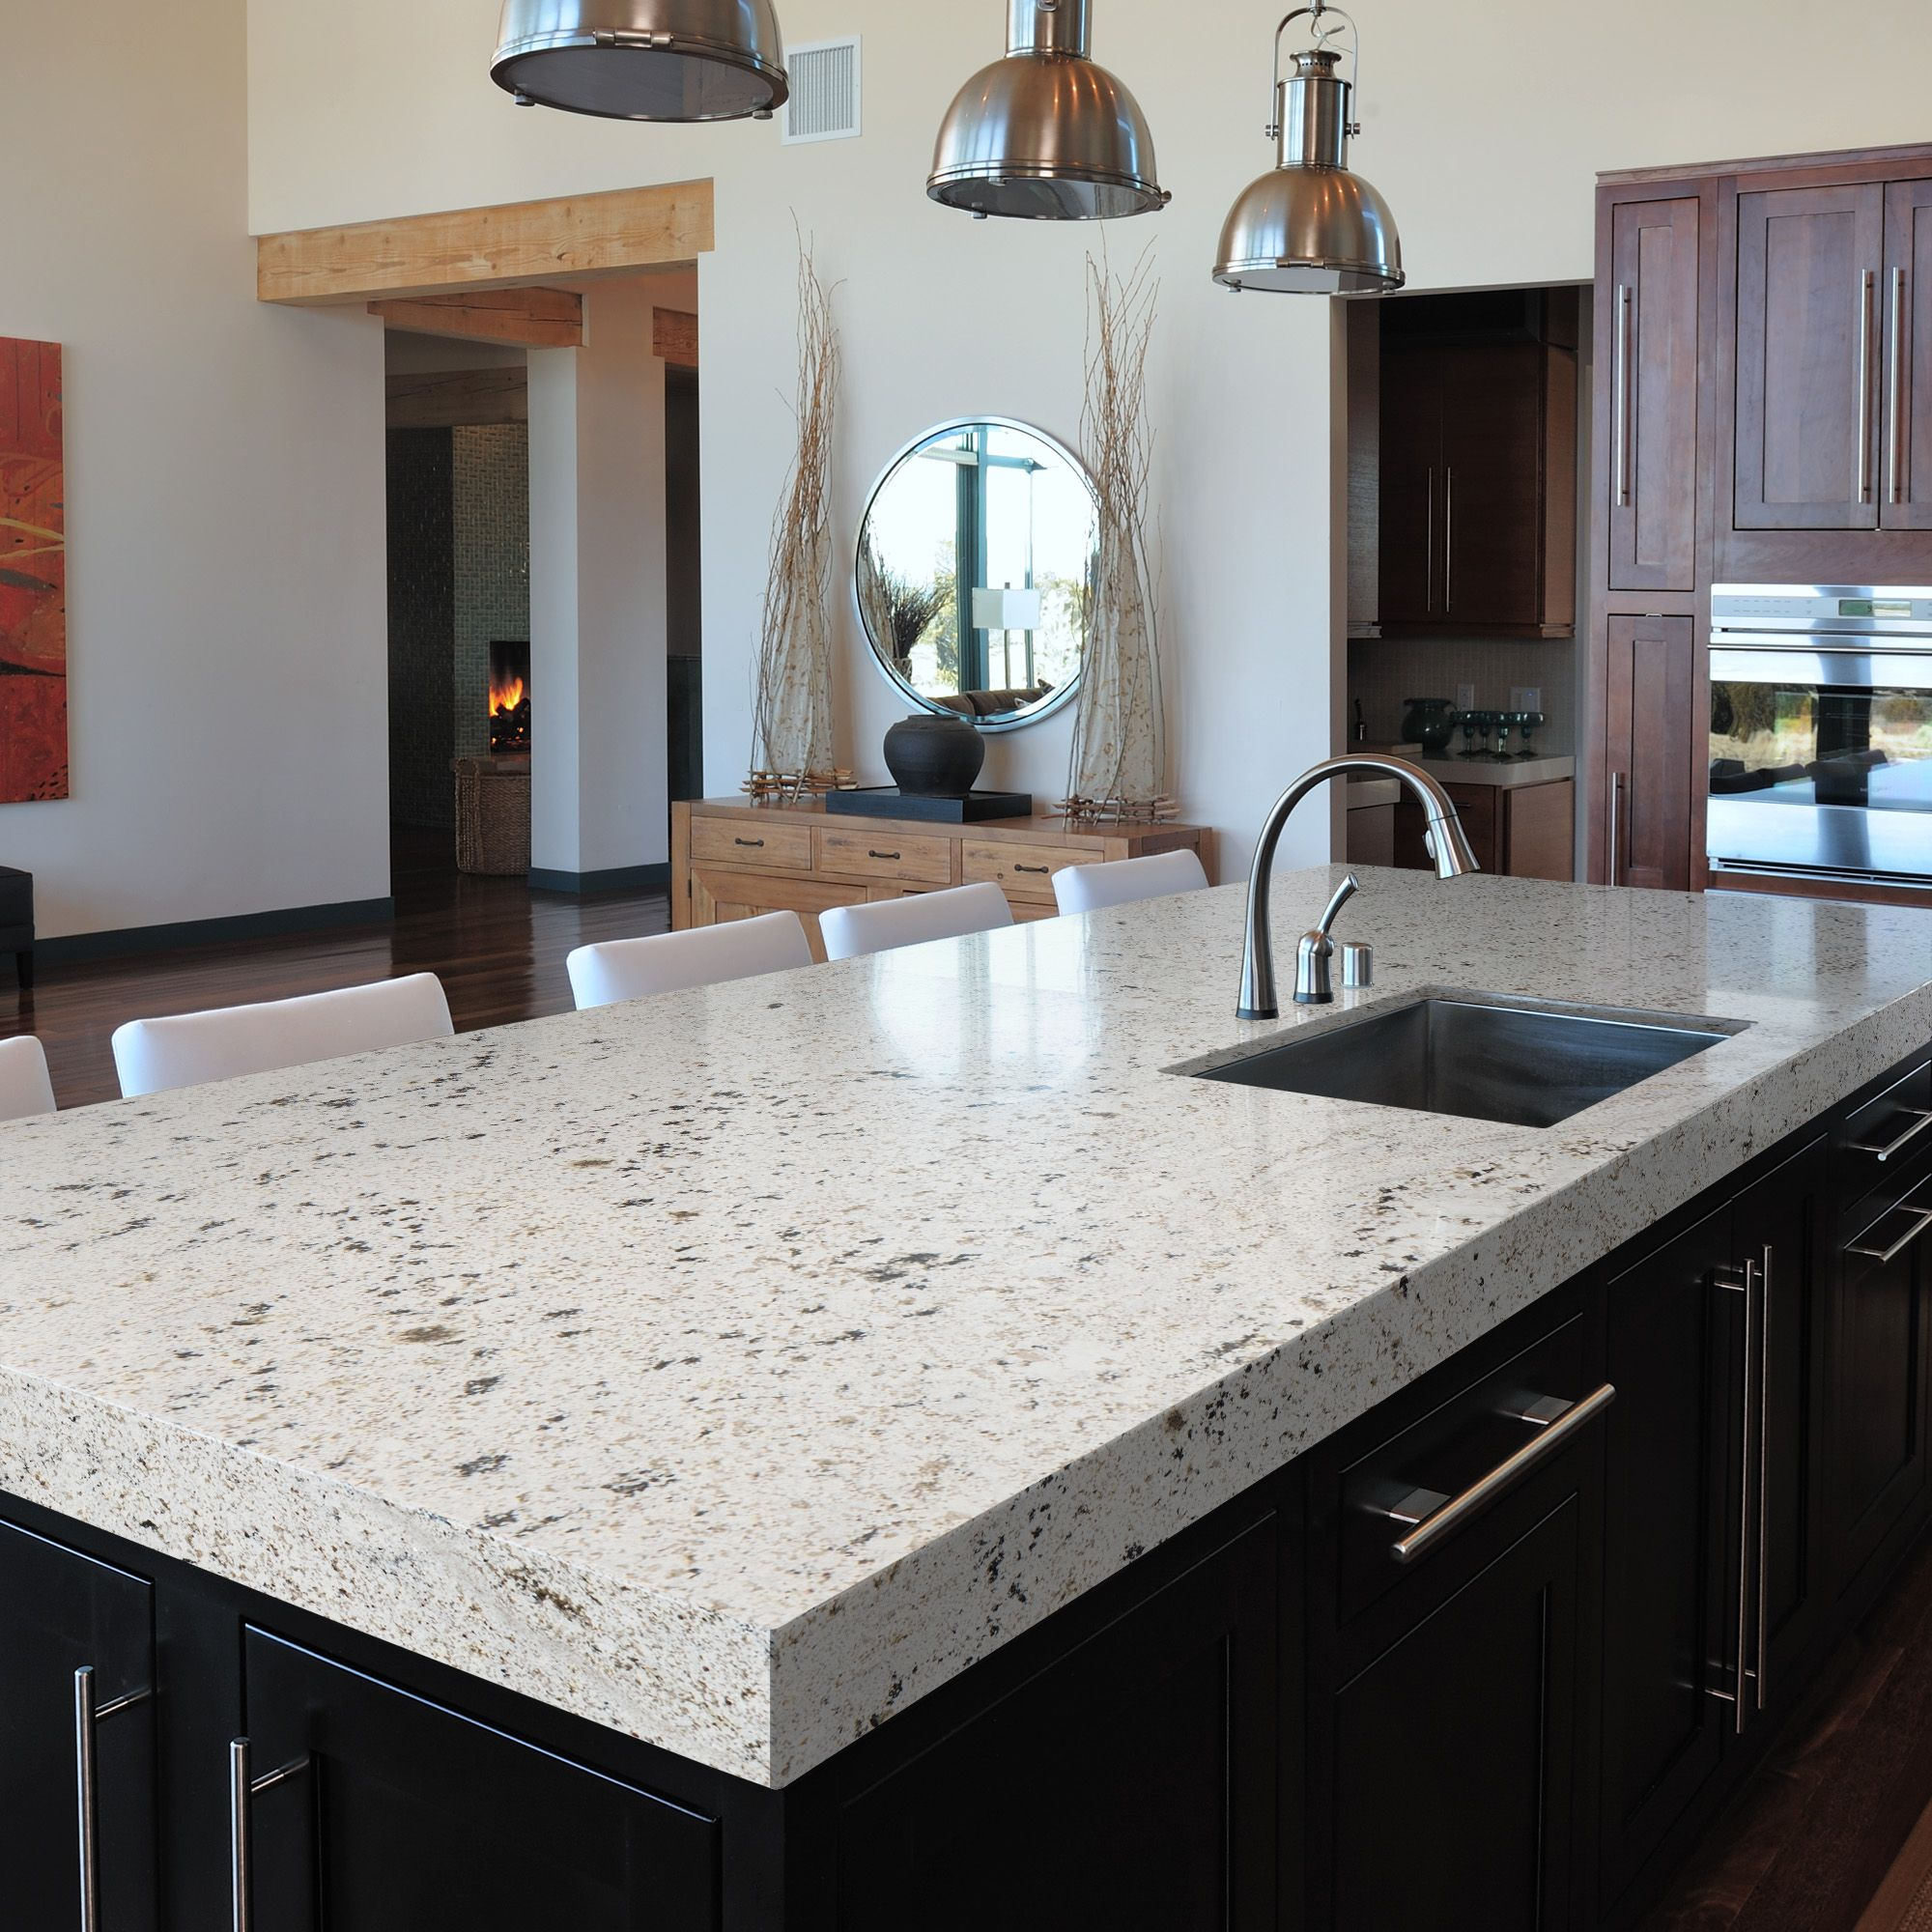 Lowes 39 sensa blanco gabrielle kitchen pinterest for Lowes countertops